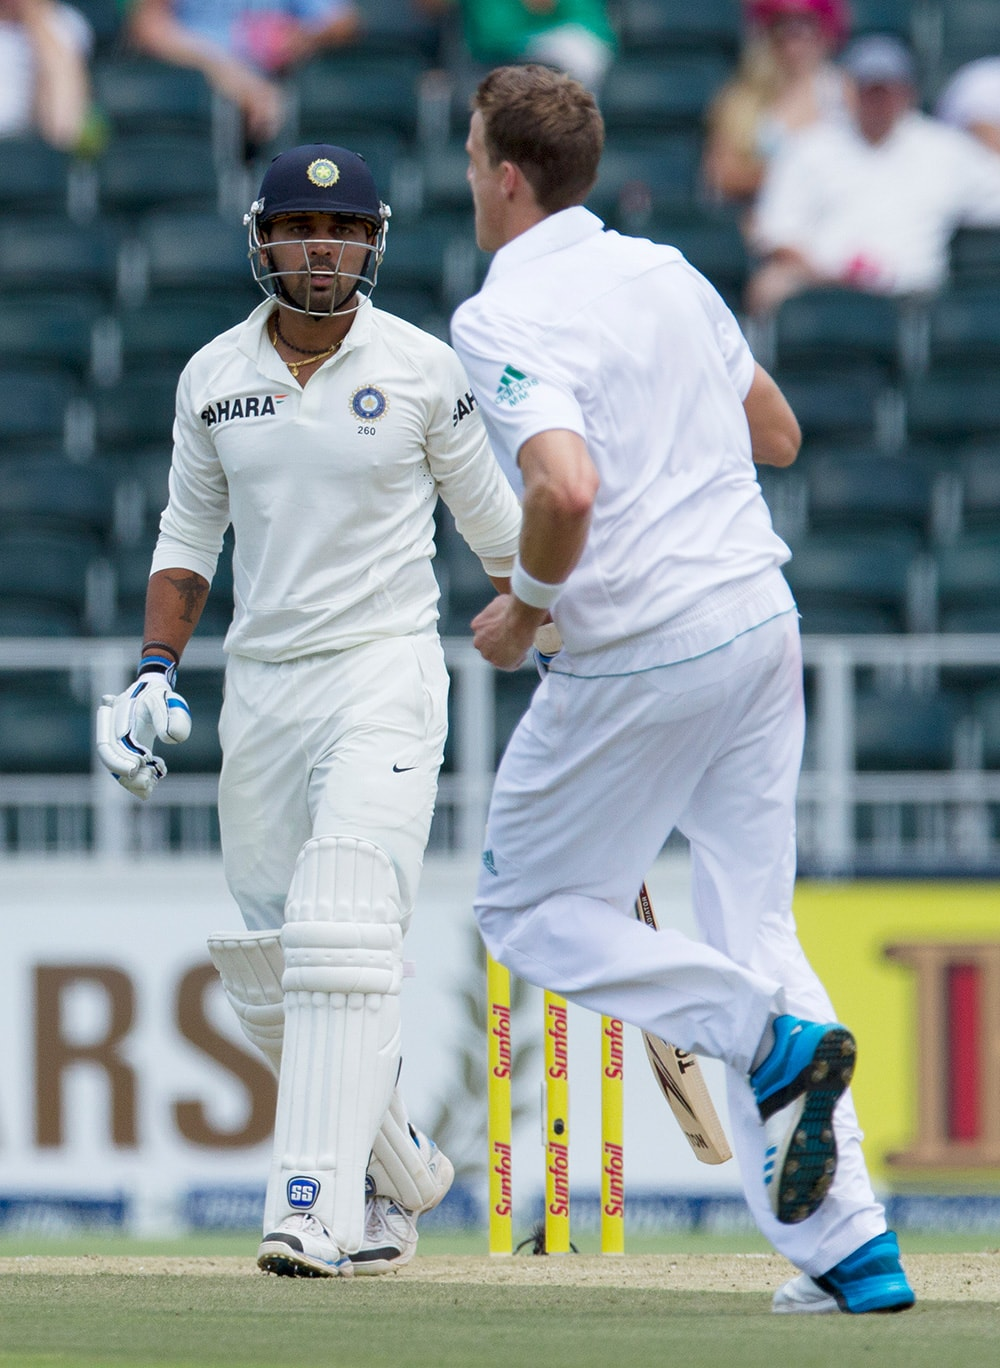 Murali Vijay watches as South Africa's bowler Morne Morkel celebrates his dismissal during the first day of their cricket test match at Wanderers stadium in Johannesburg, South Africa.